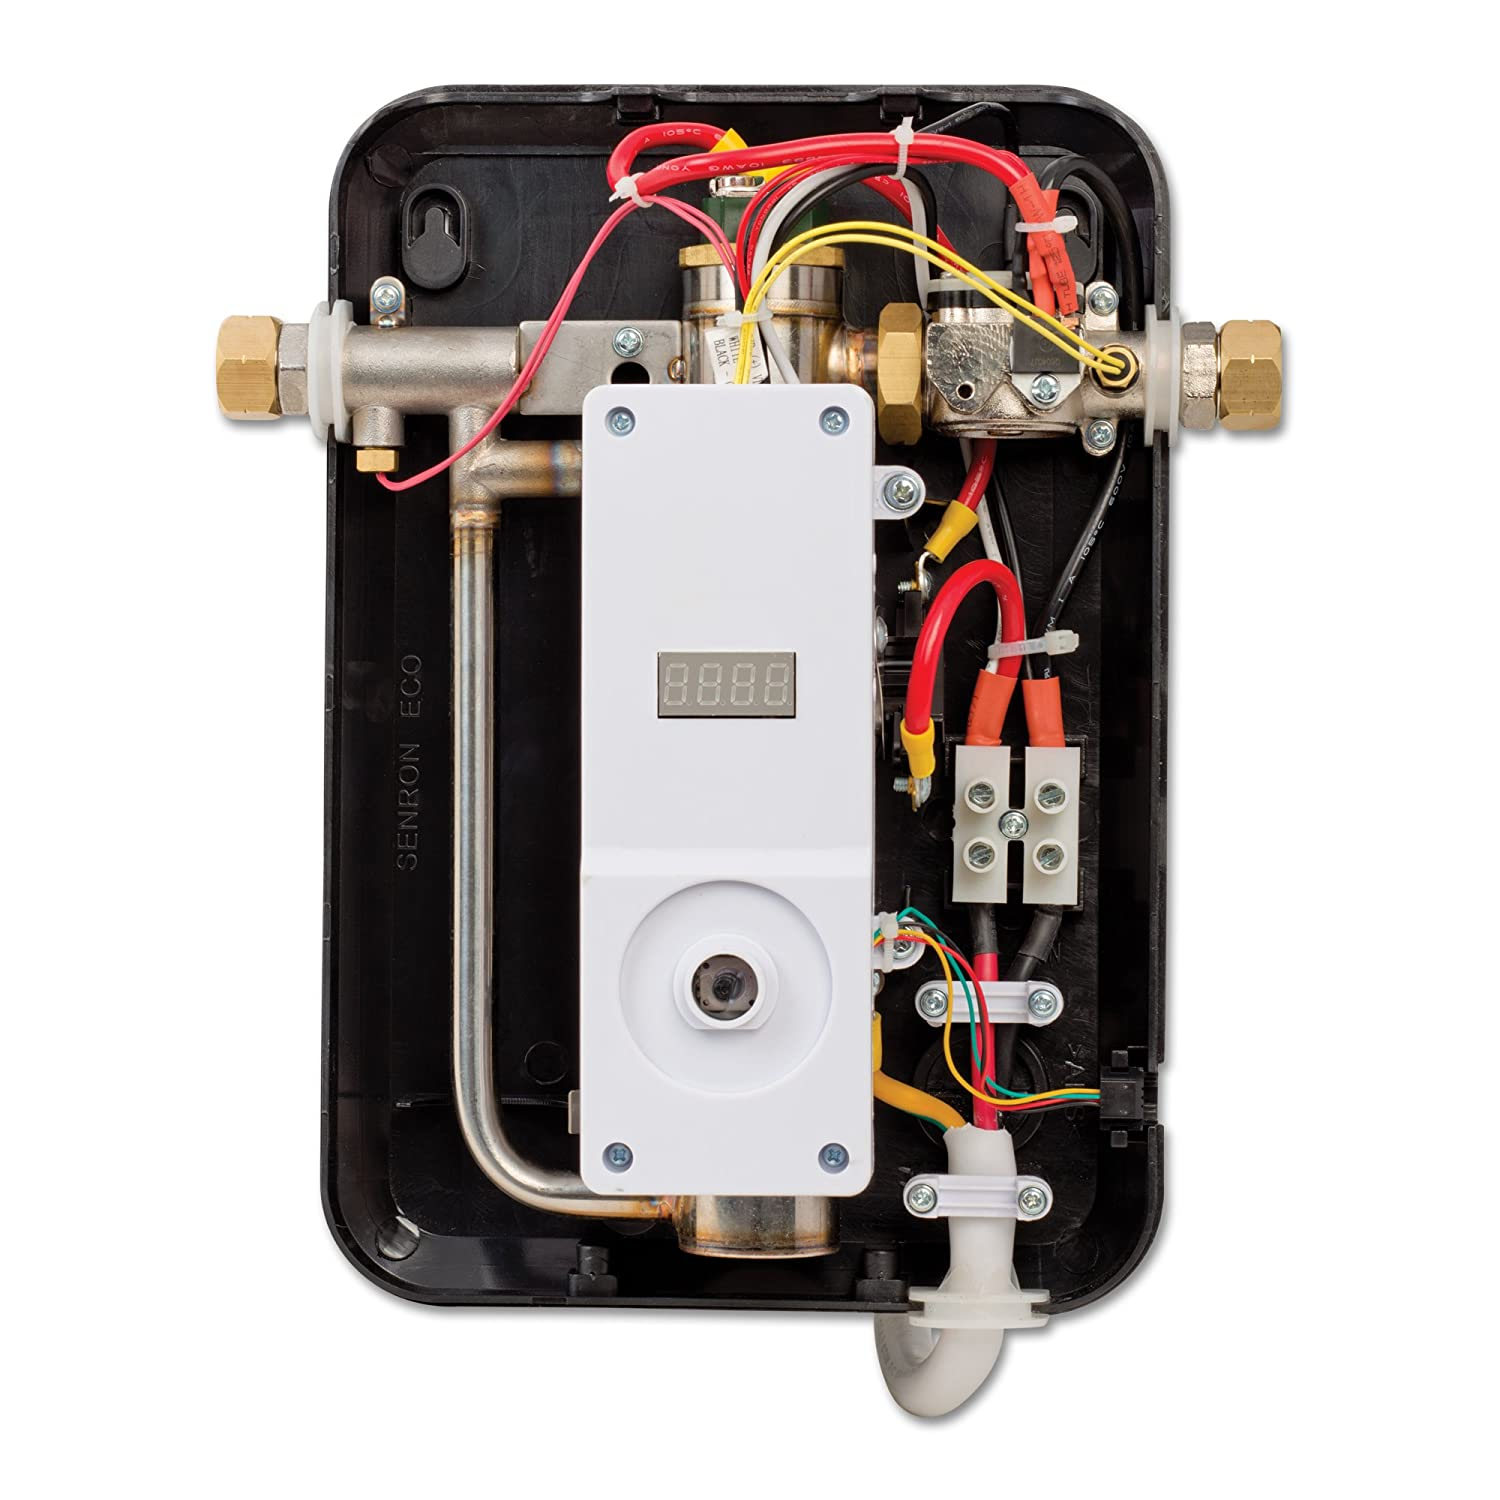 Ecosmart 8 Kw Electric Tankless Water Heater At 240 Volts With 10 Furnace Wiring Diagram Patented Self Modulating Technology Waterheater